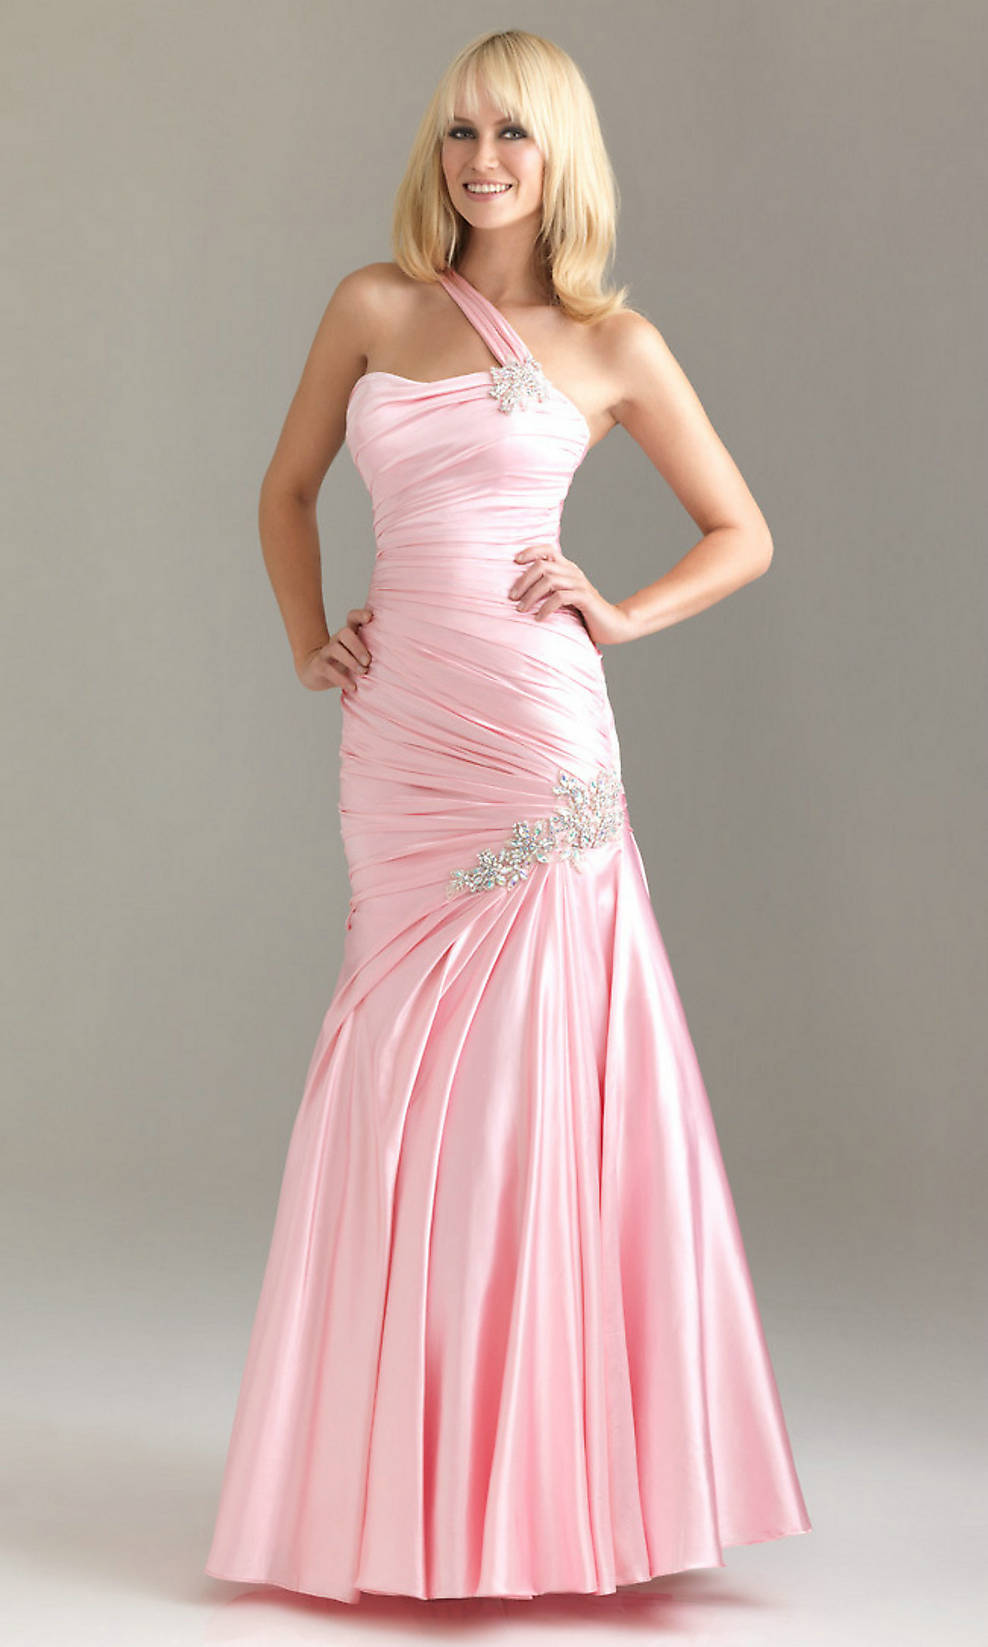 Prom Gowns | Dressed Up Girl